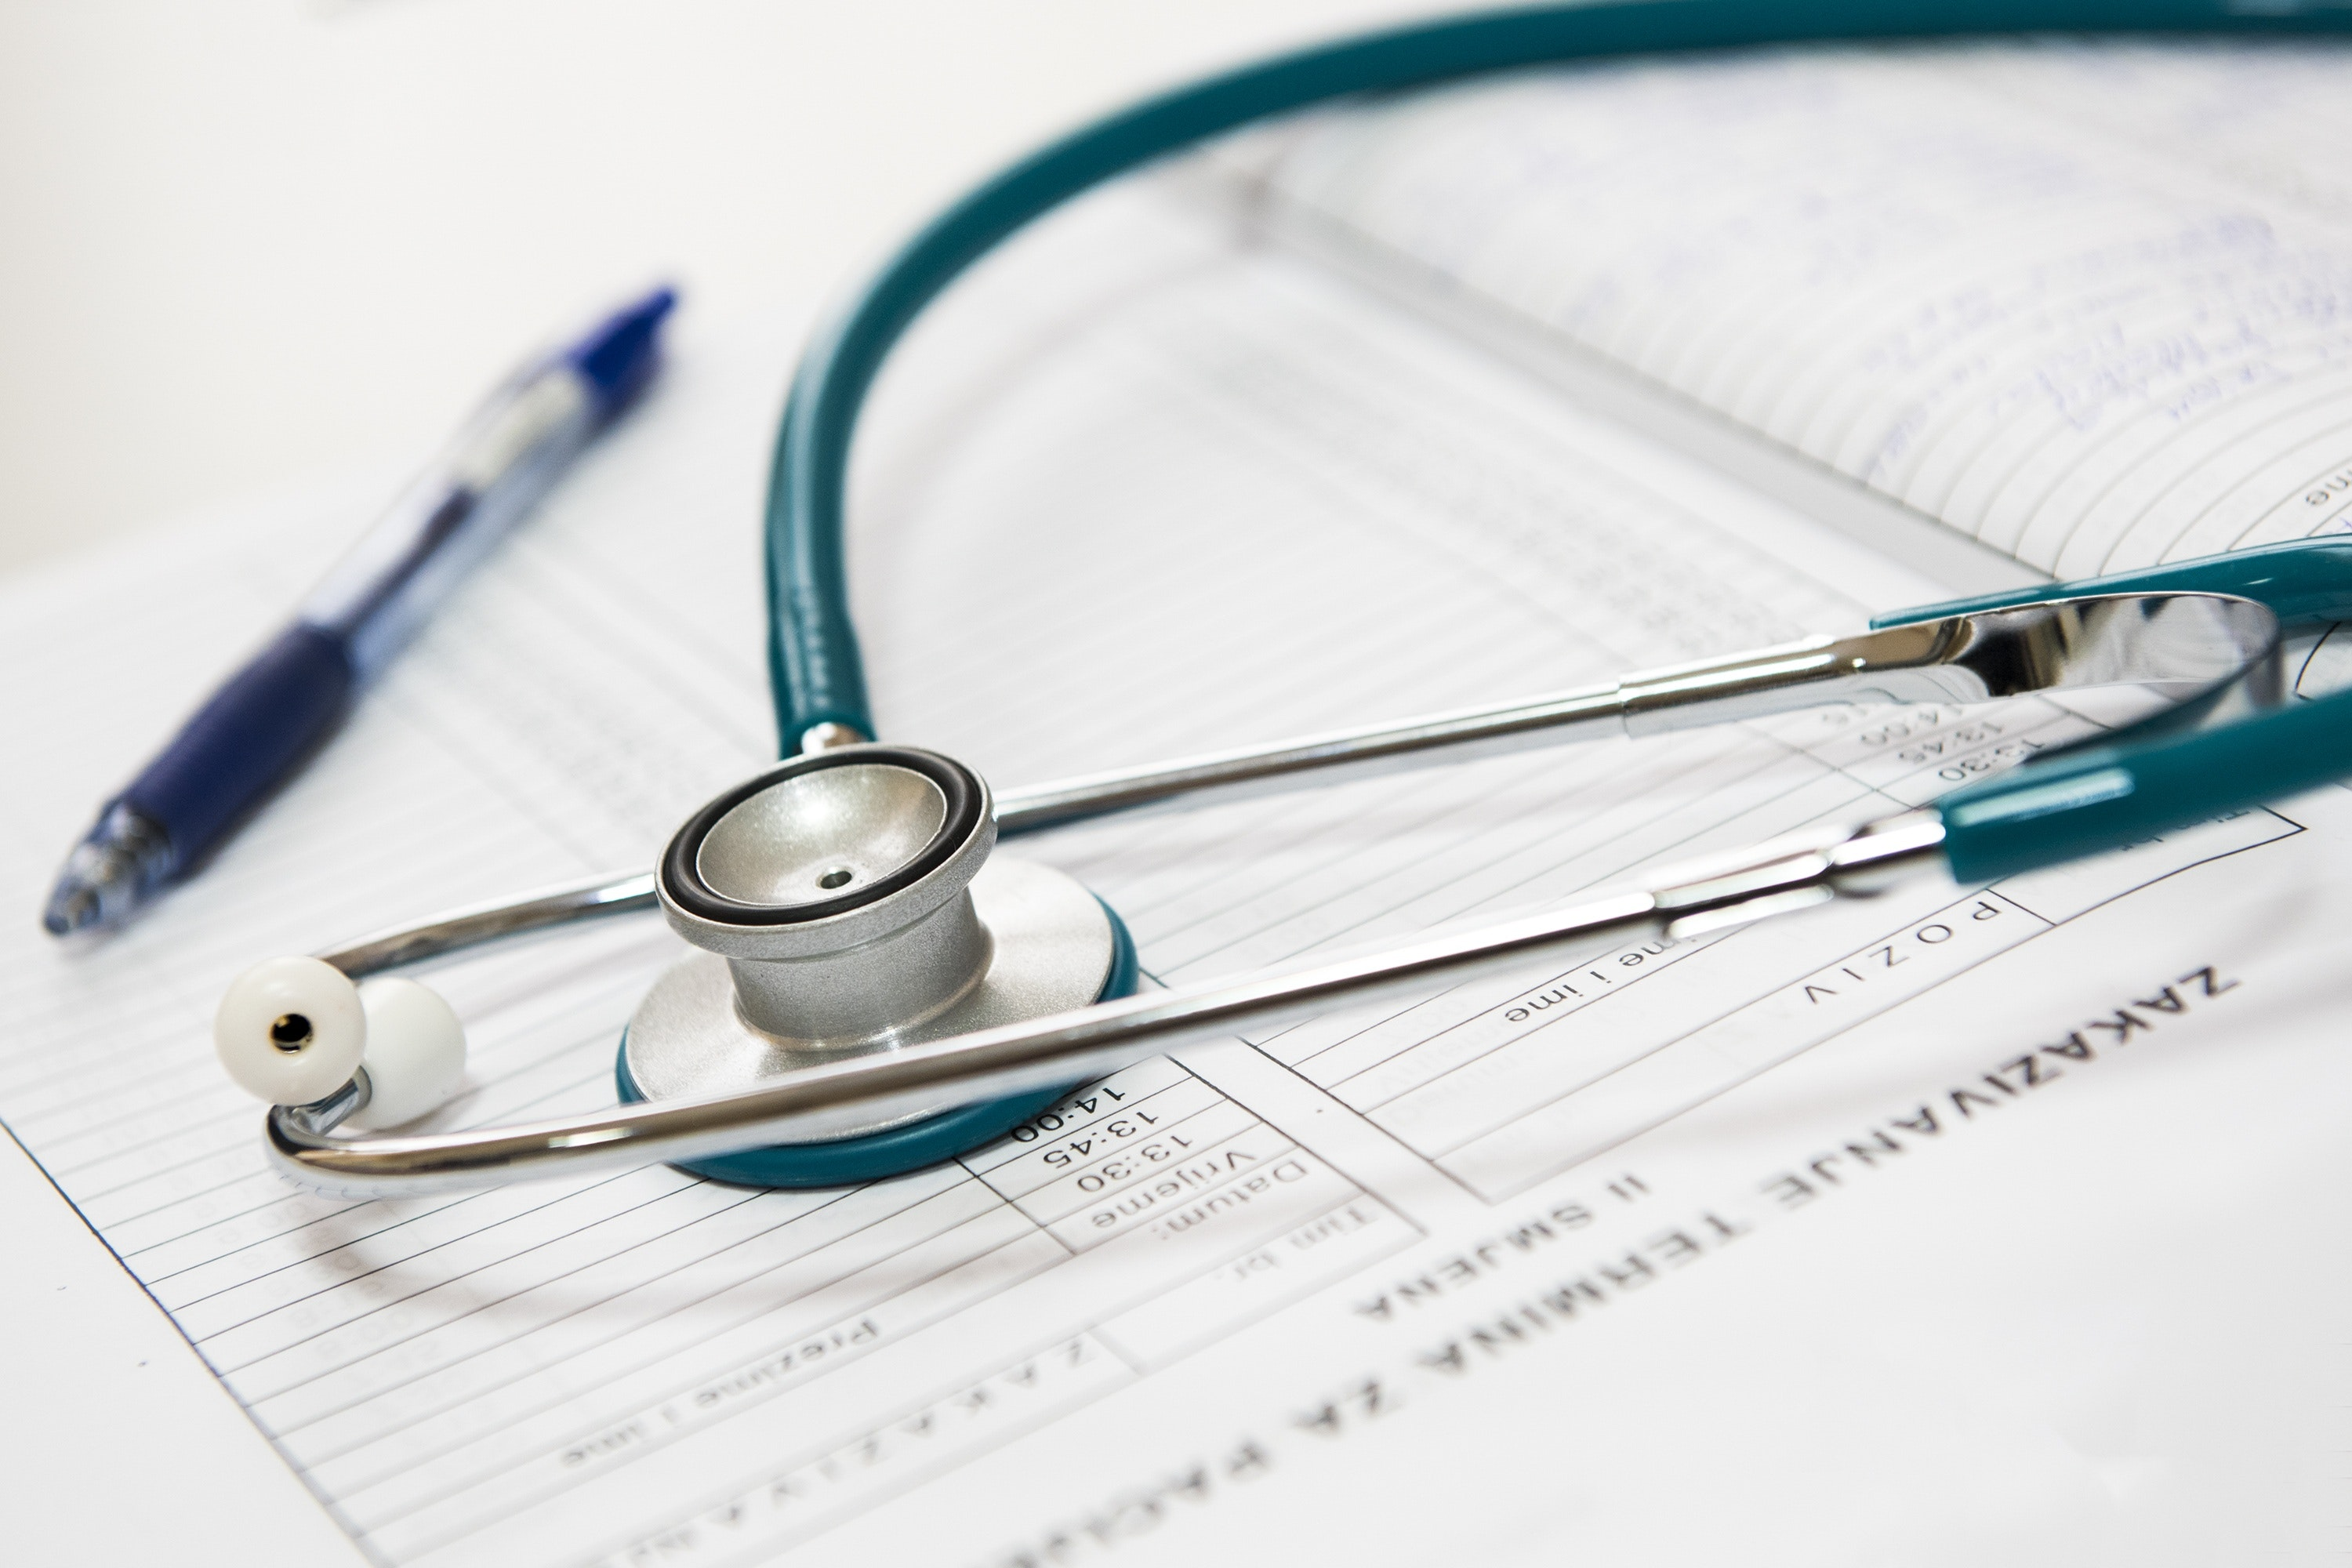 An empty information sheet lies underneath a pen and a stethoscope.